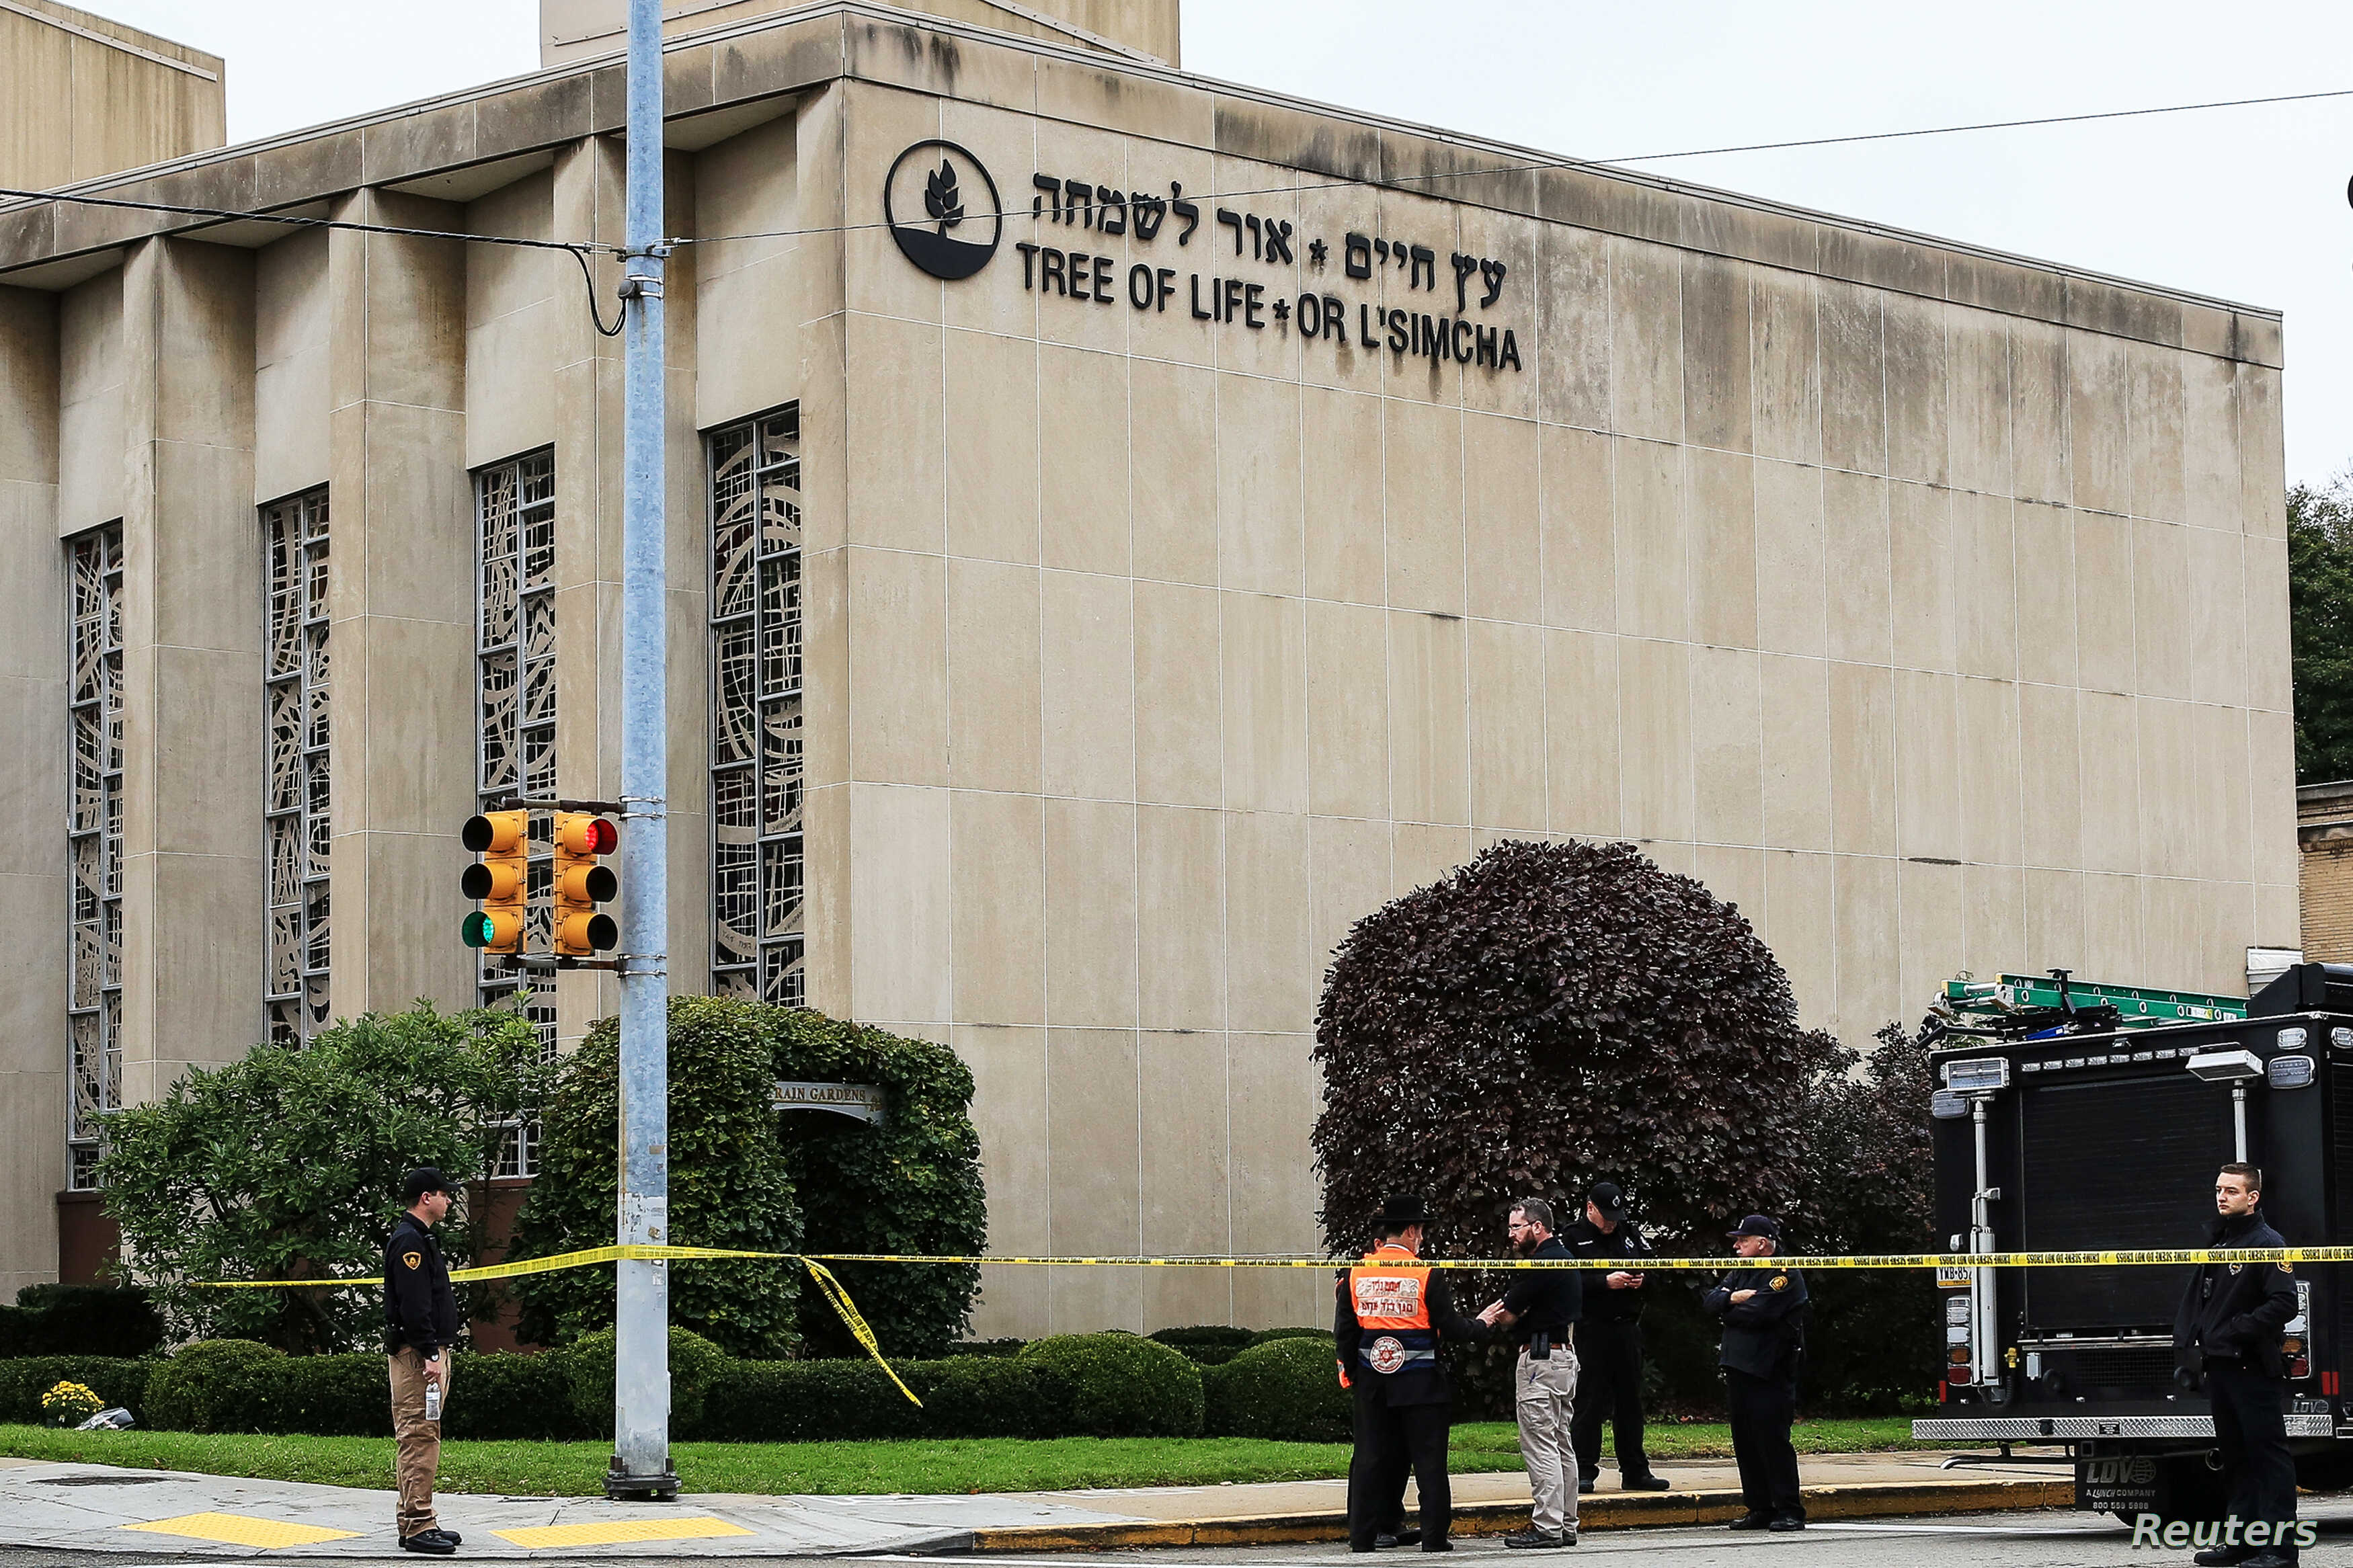 US Authorities: Mayhem at Pittsburgh Synagogue a 'Hate Crime